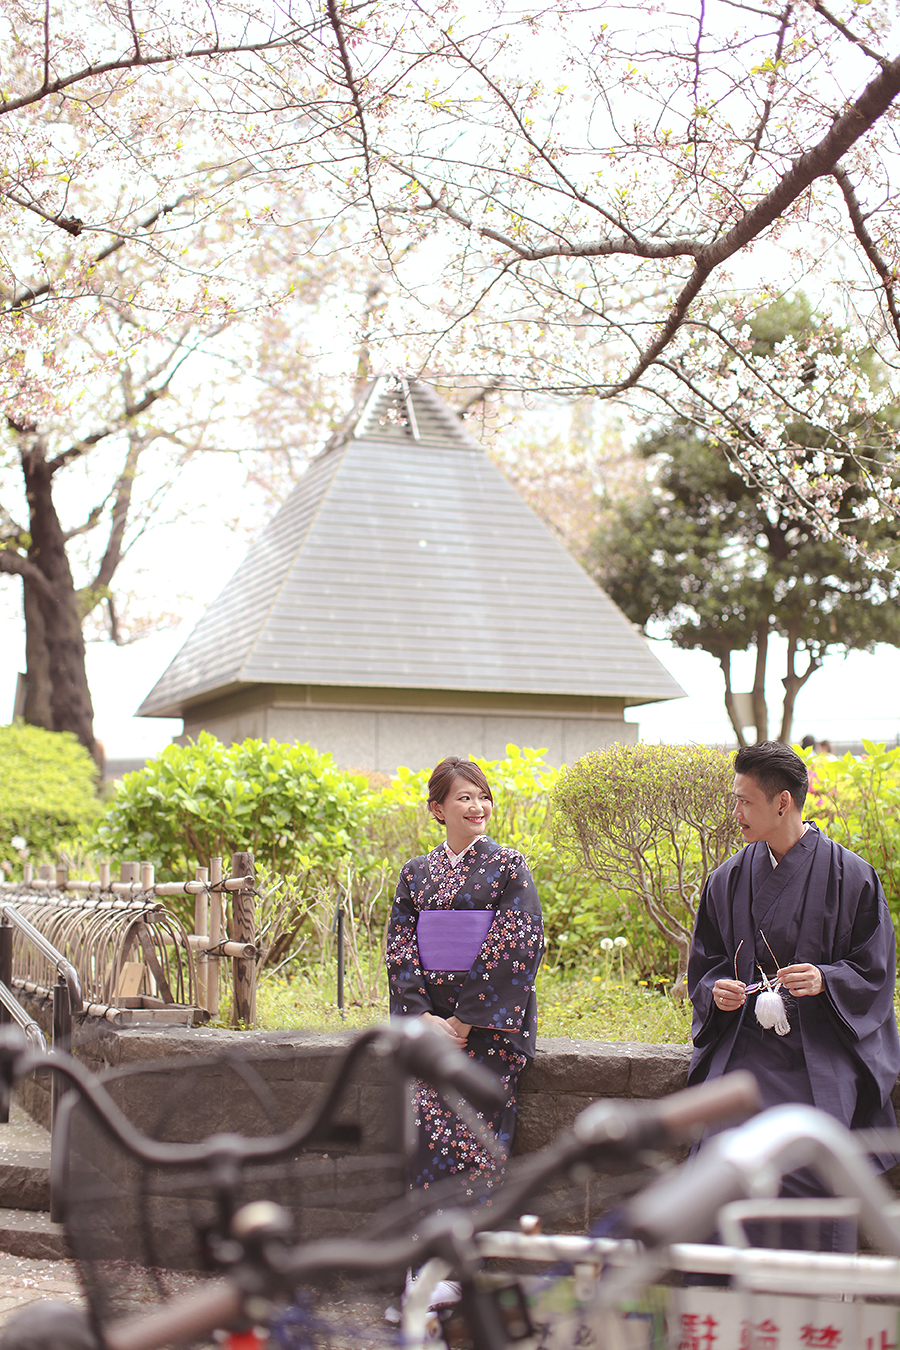 tokyo hakone japan spring sakura . engagement wedding photography by kurt ahs . ns + eu . 0406.jpg